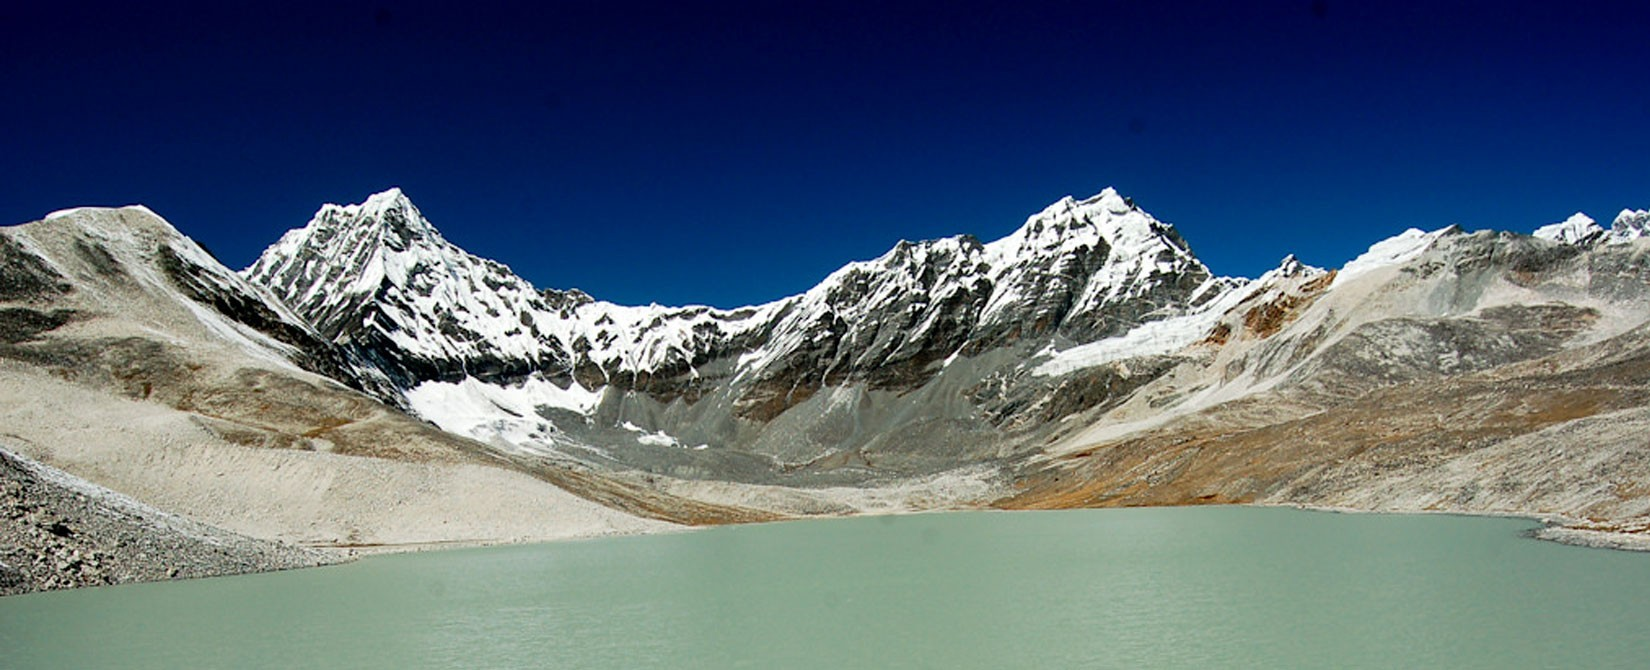 Panchpokhari holy lake in Nepal